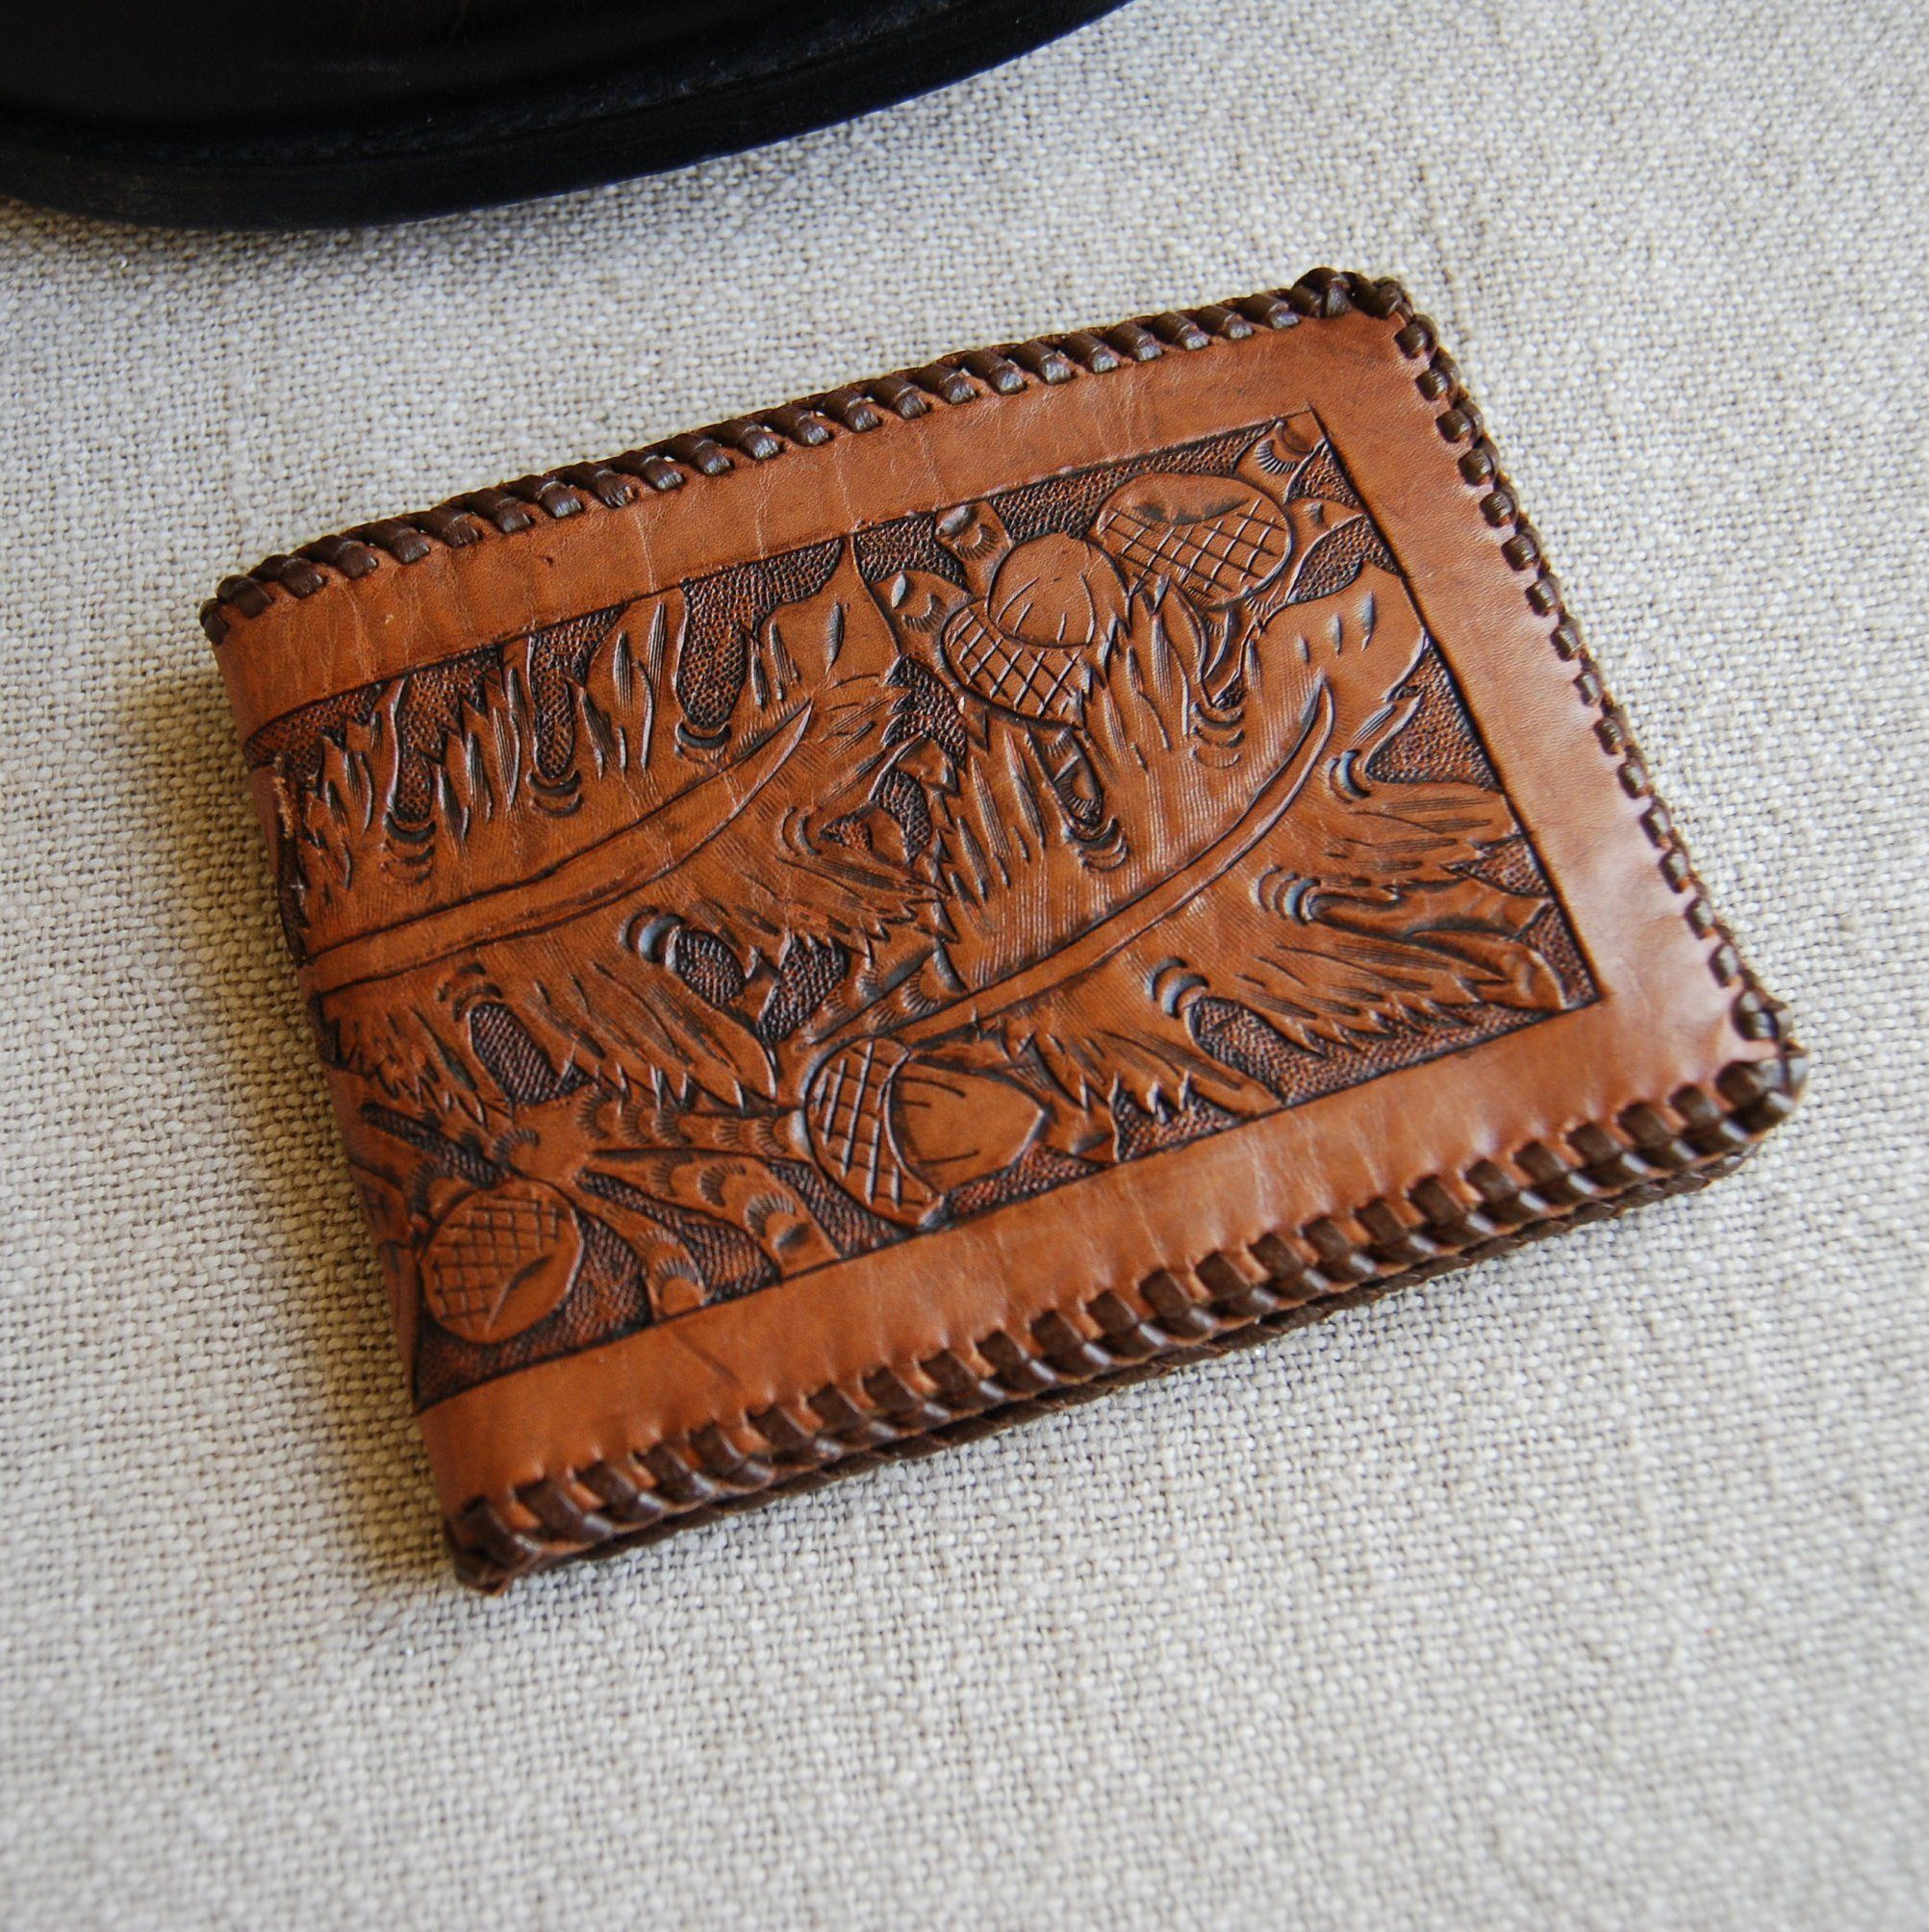 Vintage 1980/'s Western Wear Tooled MONTANA Leather Belt 40 Snap Button Brown Leaves Floral Vaquero